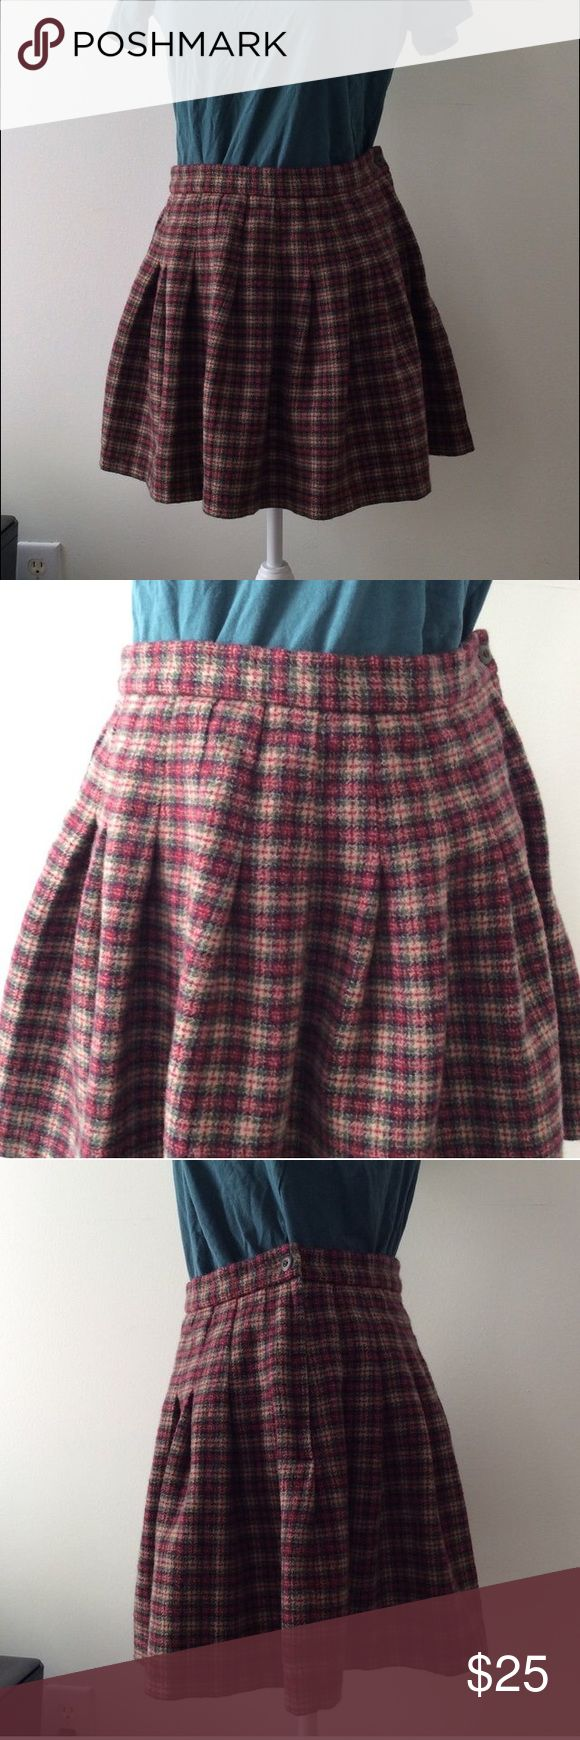 Abercrombie and Fitch wool plaid mini skirt ✨ Vintage Abercrombie and Fitch wool skirt ✨ size large and true to size! In great condition (does have age but NO rips or holes!) feel like a kawaii cheerleader in this 💕 Abercrombie & Fitch Skirts Mini